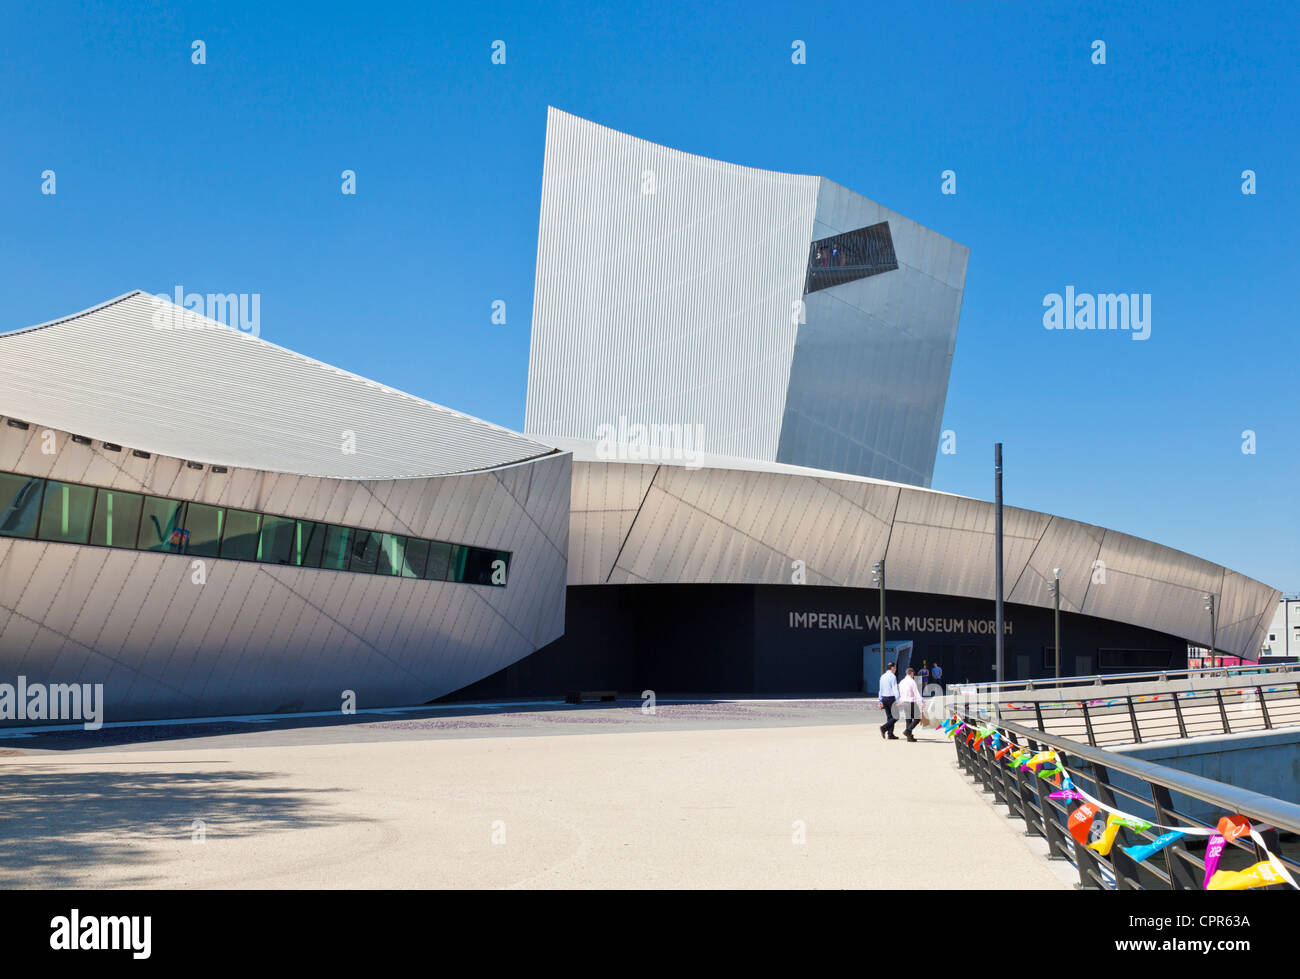 Imperial war museum north  salford quays manchester england GB UK EU Europe - Stock Image